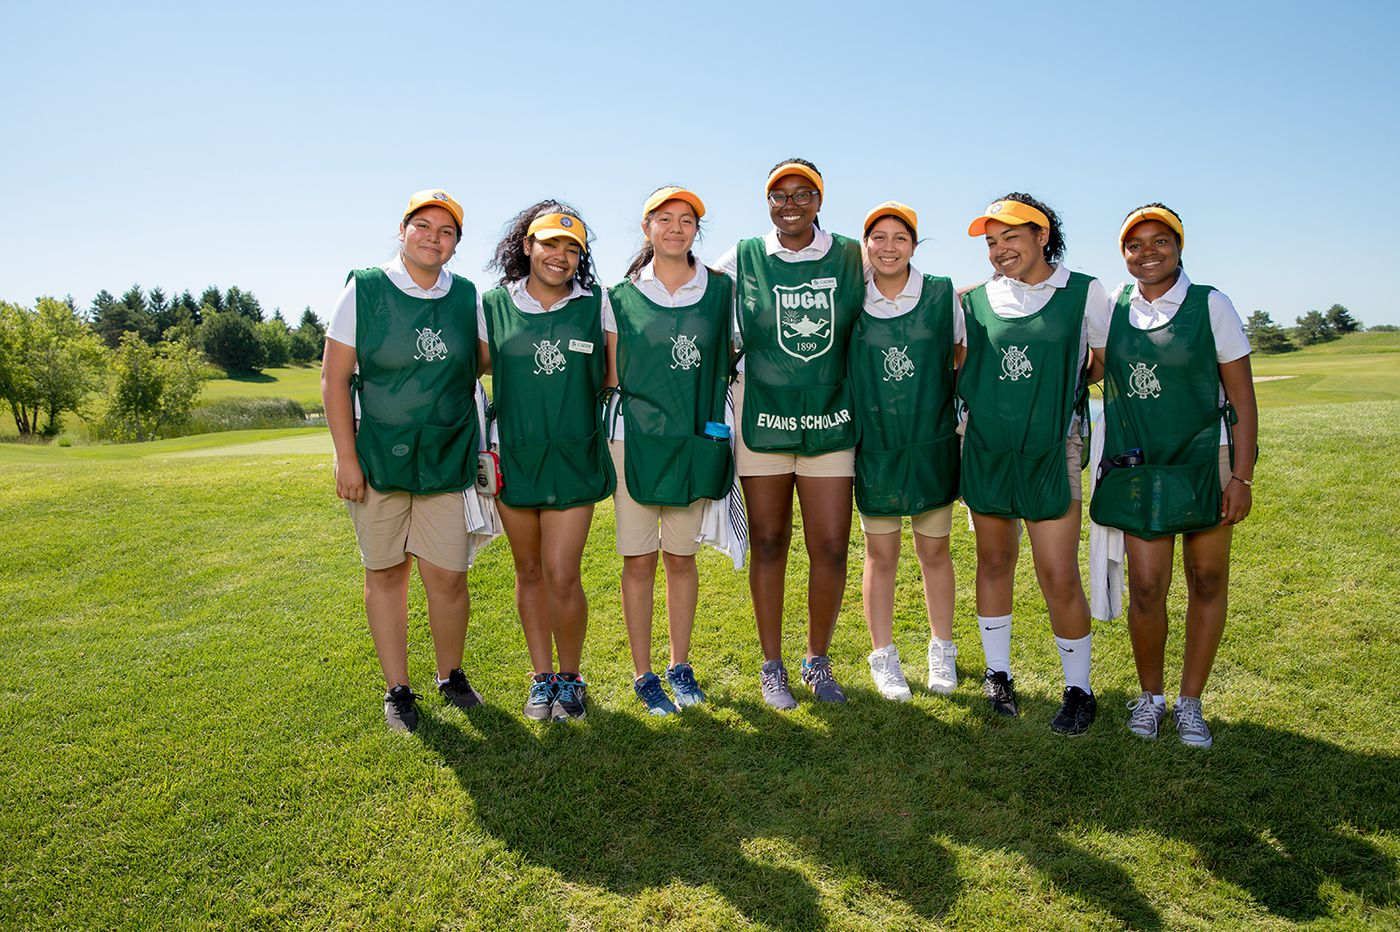 Girls from Philly high school pursue caddie scholarship for college